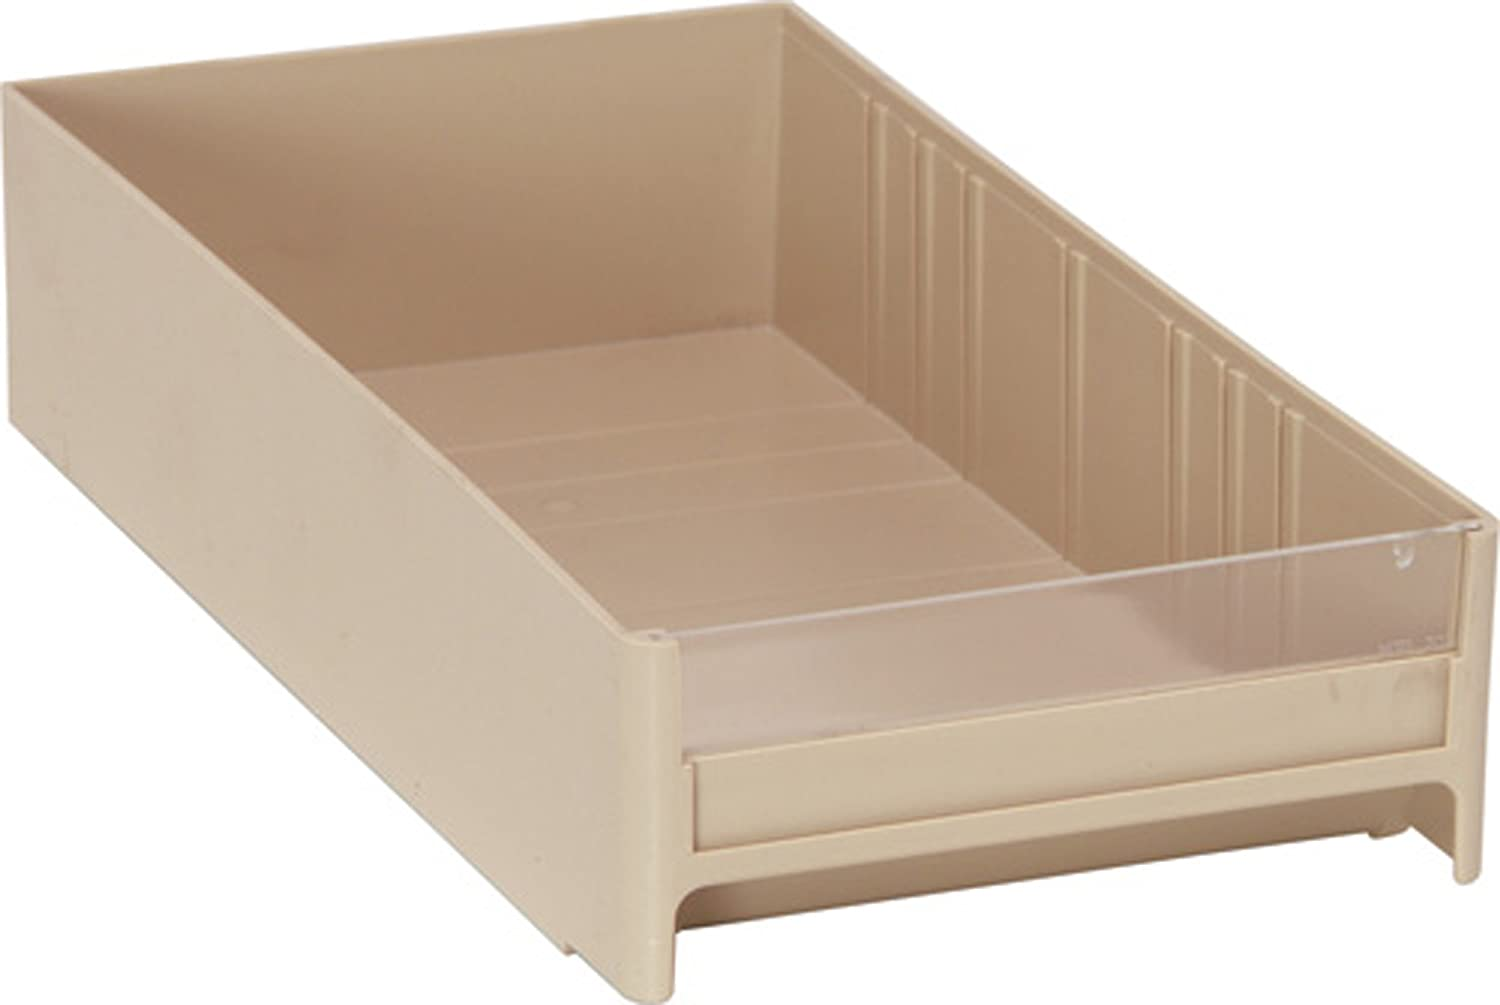 B004JD3RFE Quantum IDR203IV 11-Inch Long by 5-5/8-Inch Wide by 2-1/2-Inch High Patient Drawers, Ivory, 24-Pack 71jDTGpnVoL.SL1500_